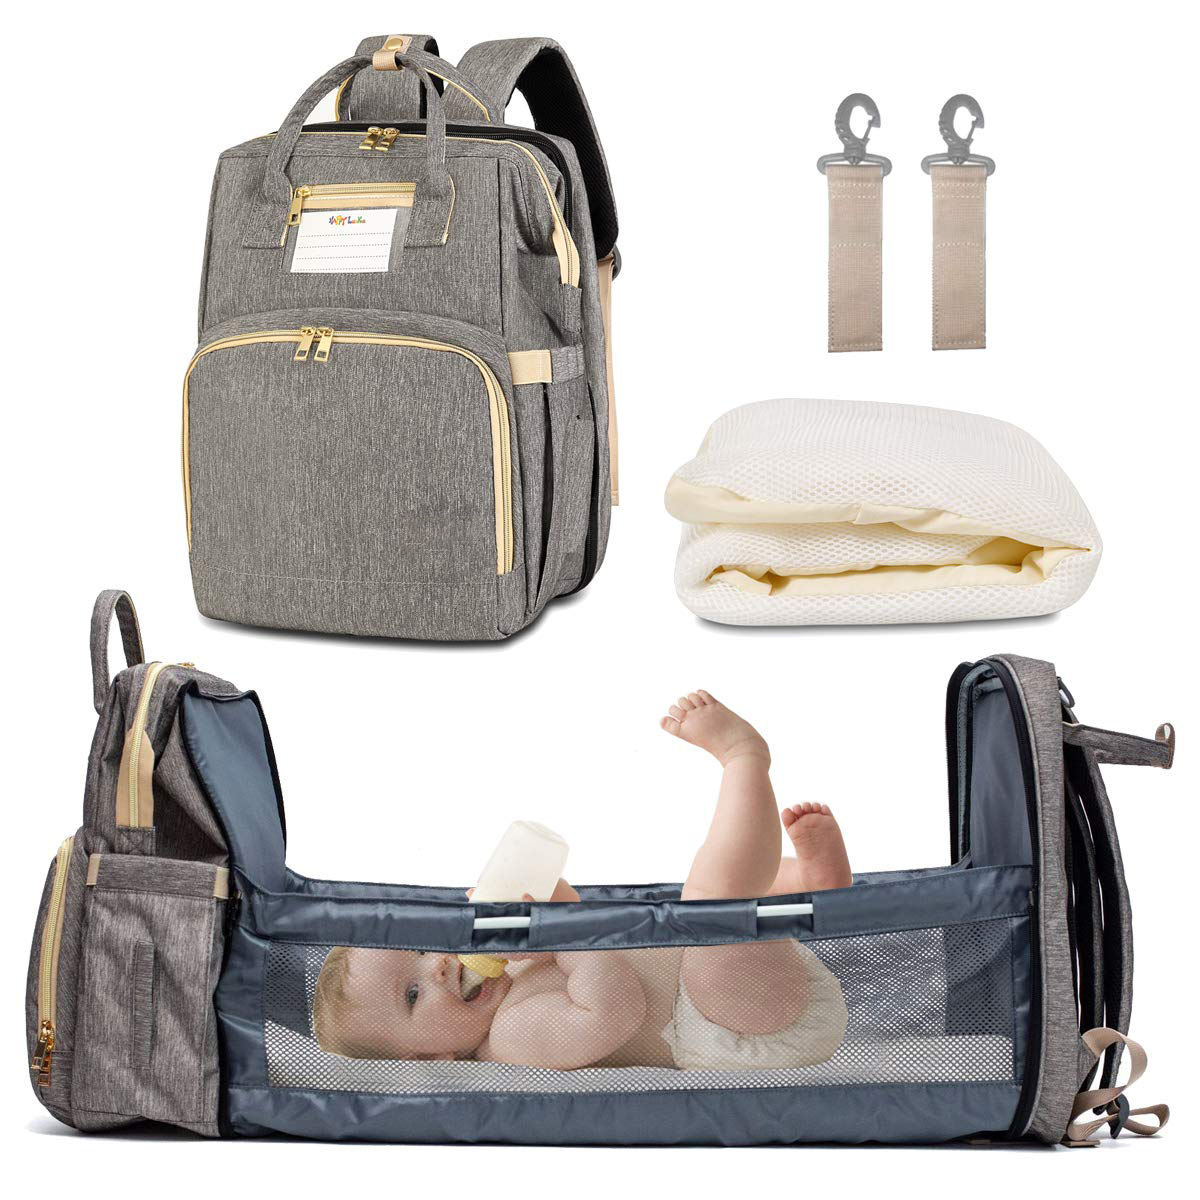 【BUY 2 FREE SHIPPING】New portable multifunctional folding bed mom bag